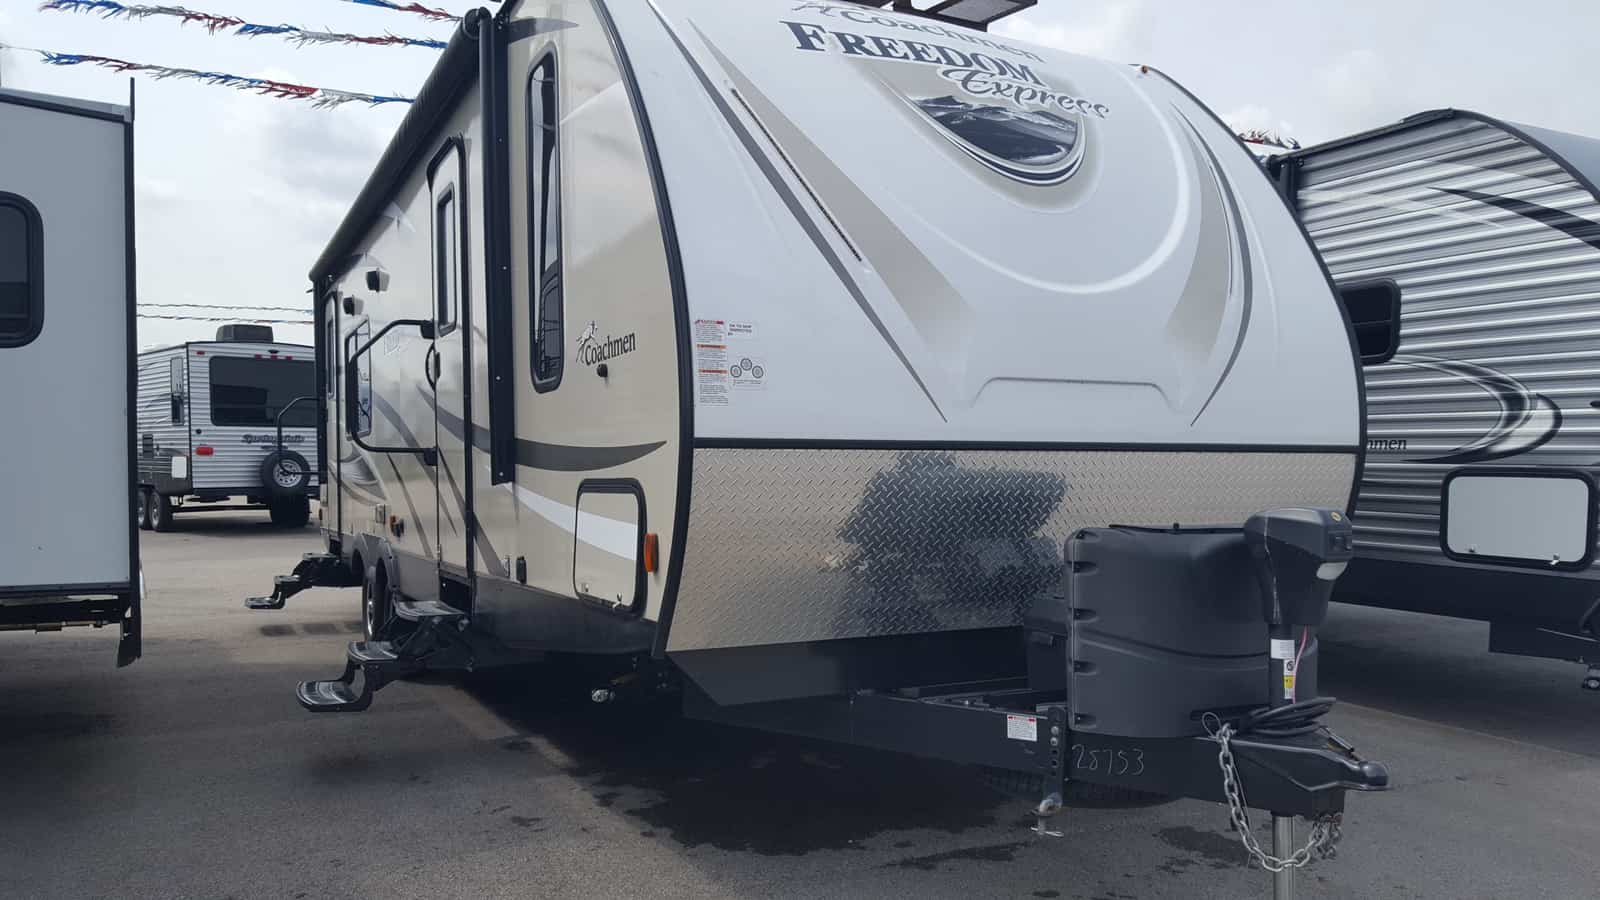 USED 2018 Coachmen FREEDOM EXPRESS 276RKDS - American RV